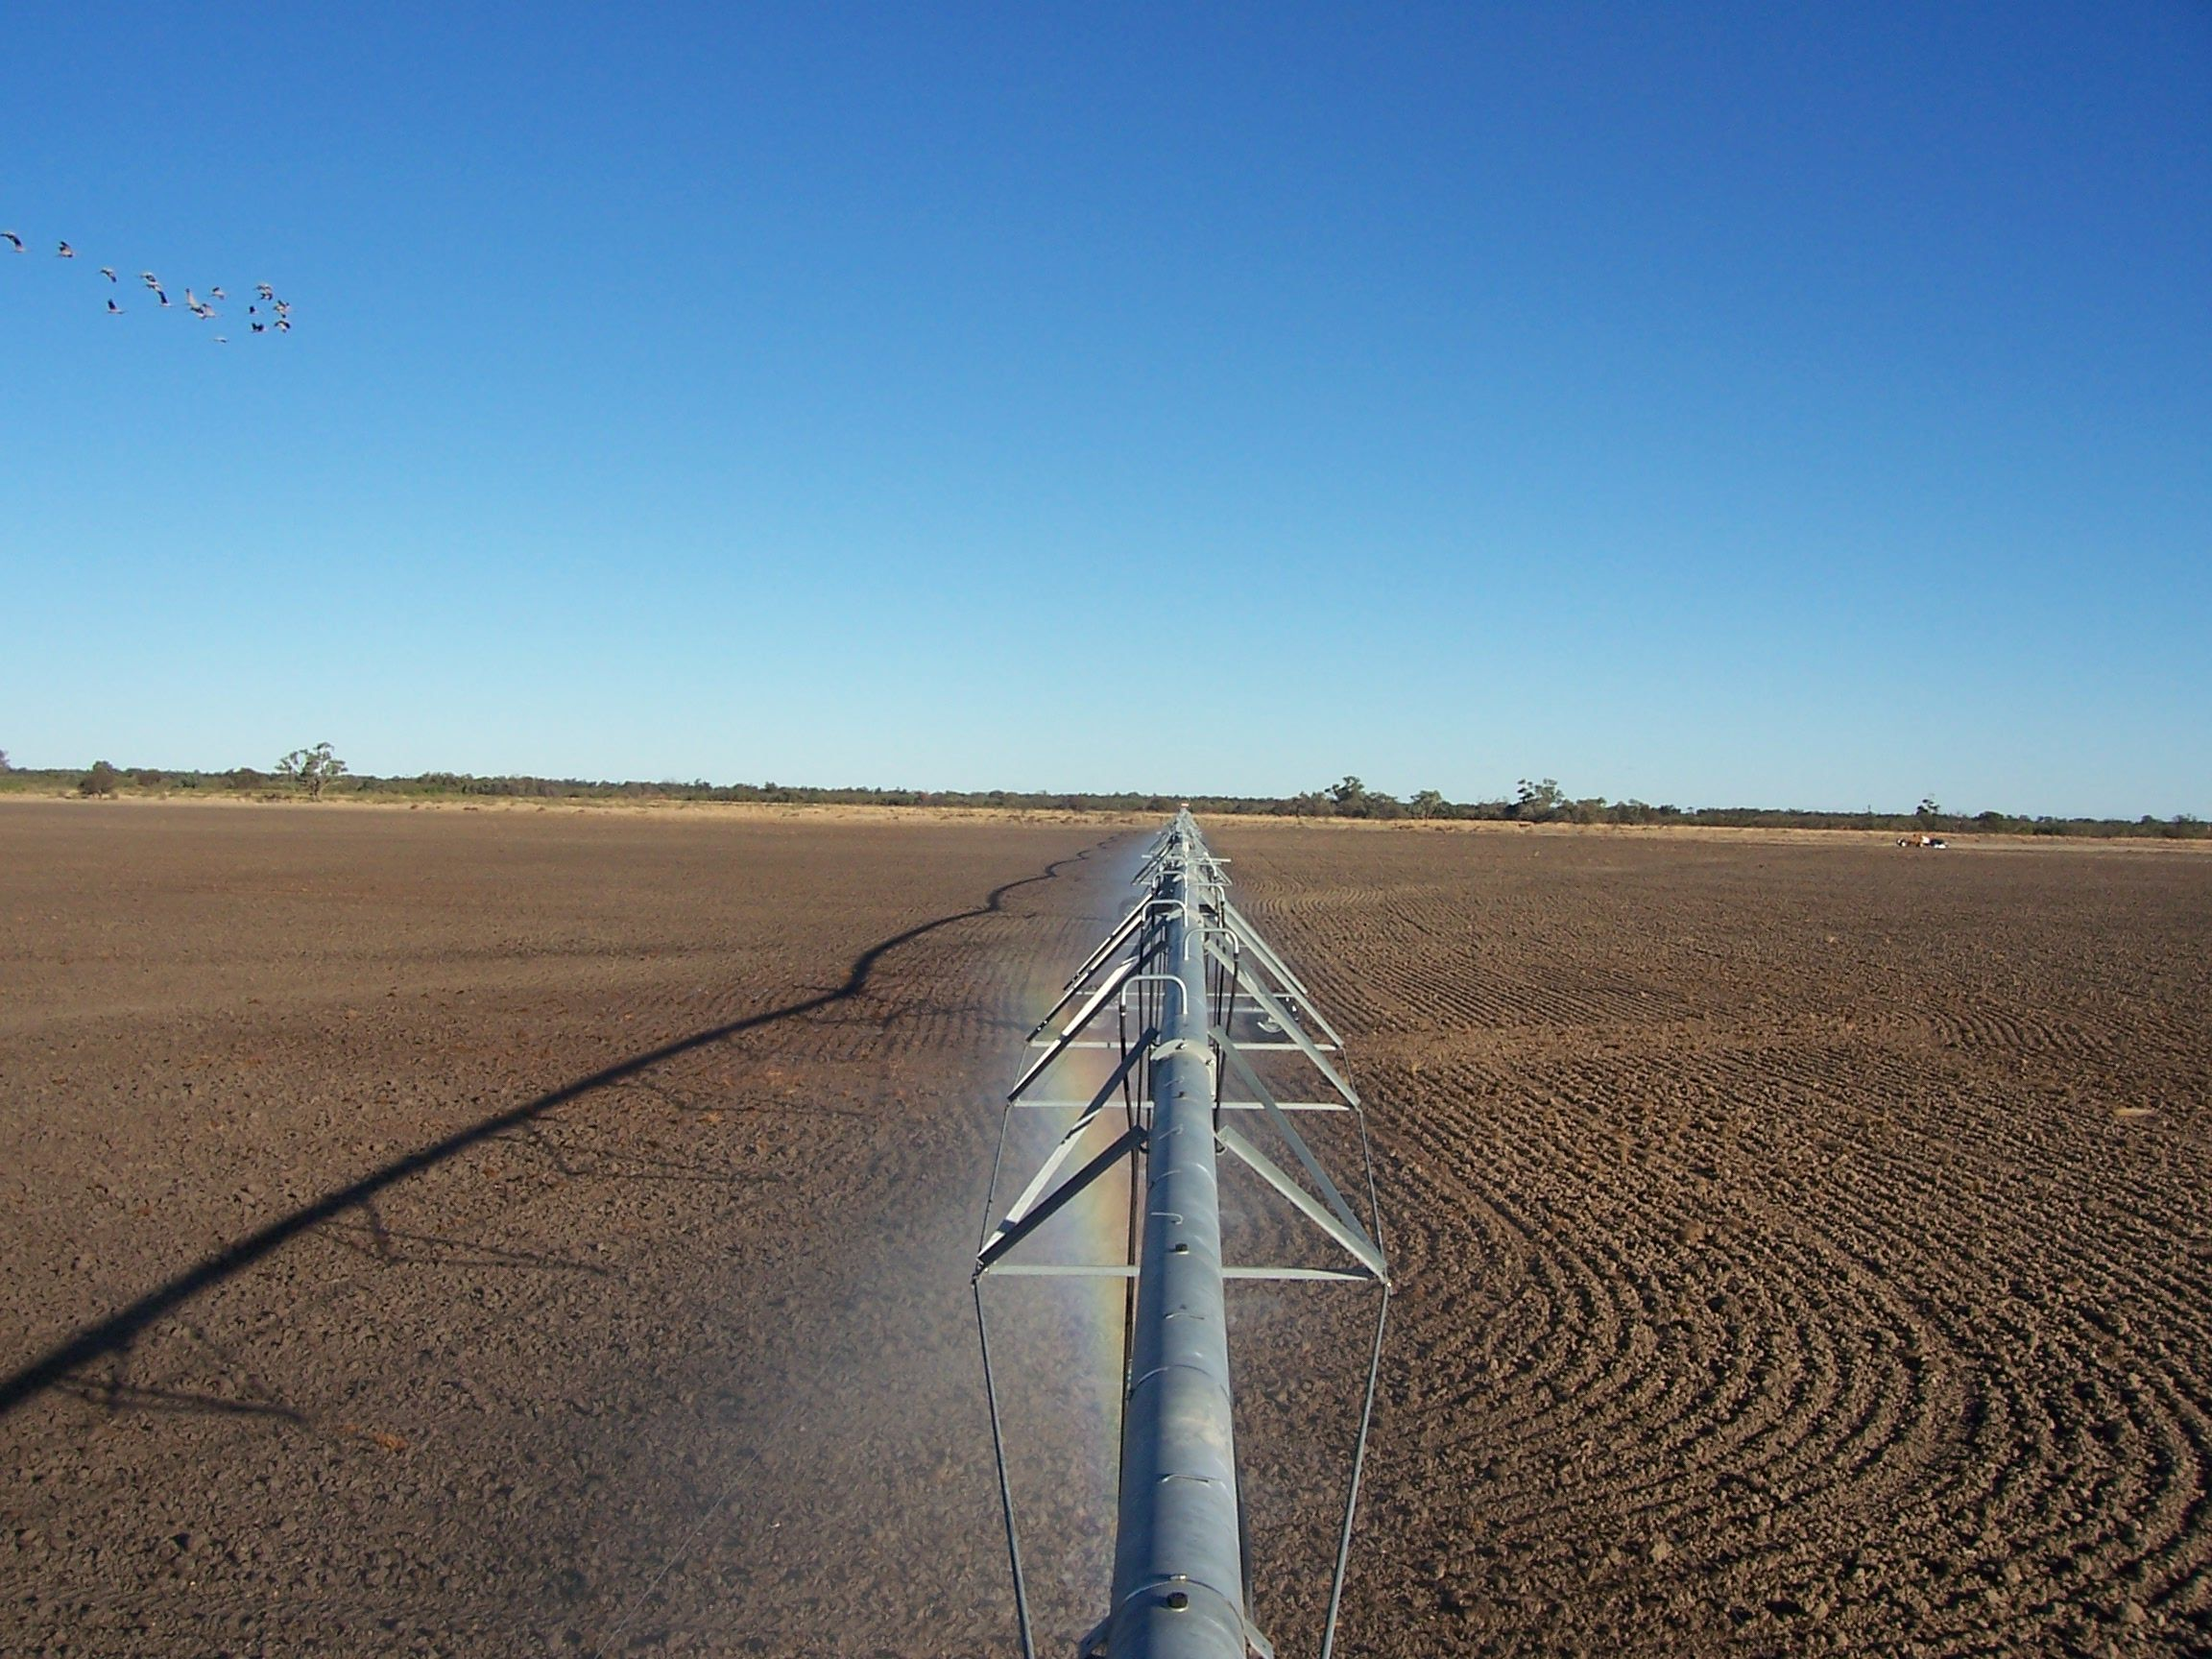 zimmatic lateral move irrigator under construction nsw zimmatic lateral move irrigator under construction nsw zimmatic lindsayimternational teamirrigation